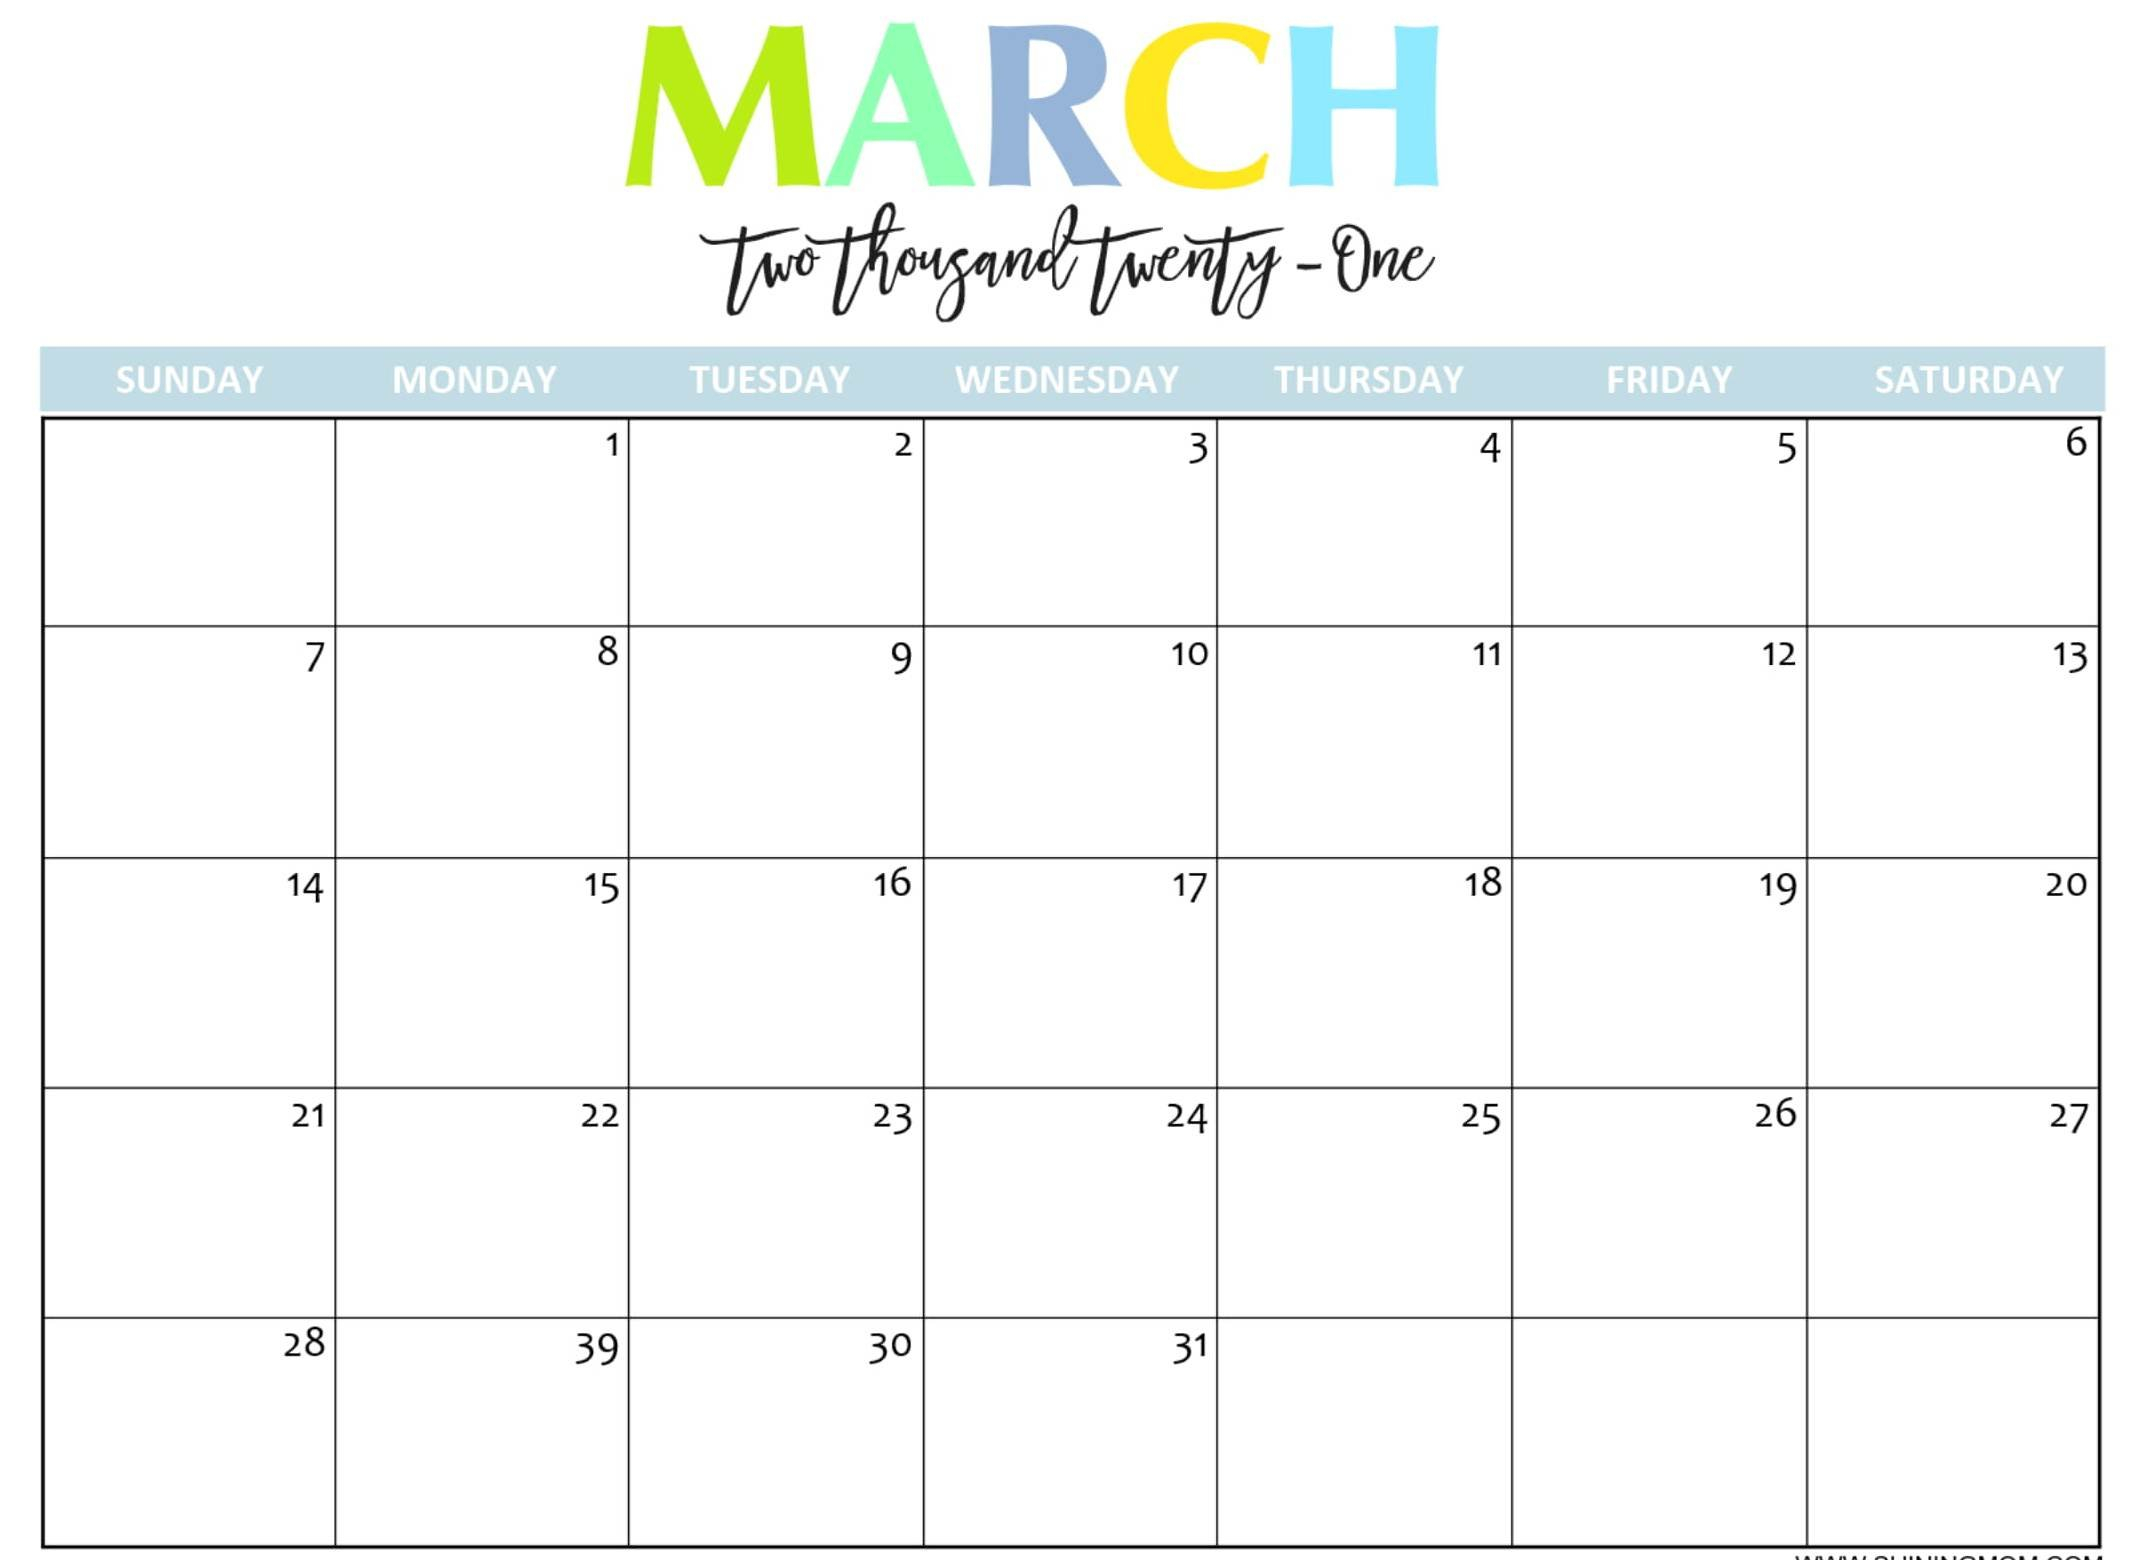 Monthly Calendar For March 2021 Fillable Template – Web Free Weekly Calendar Fillable With Times Starting At 6Am